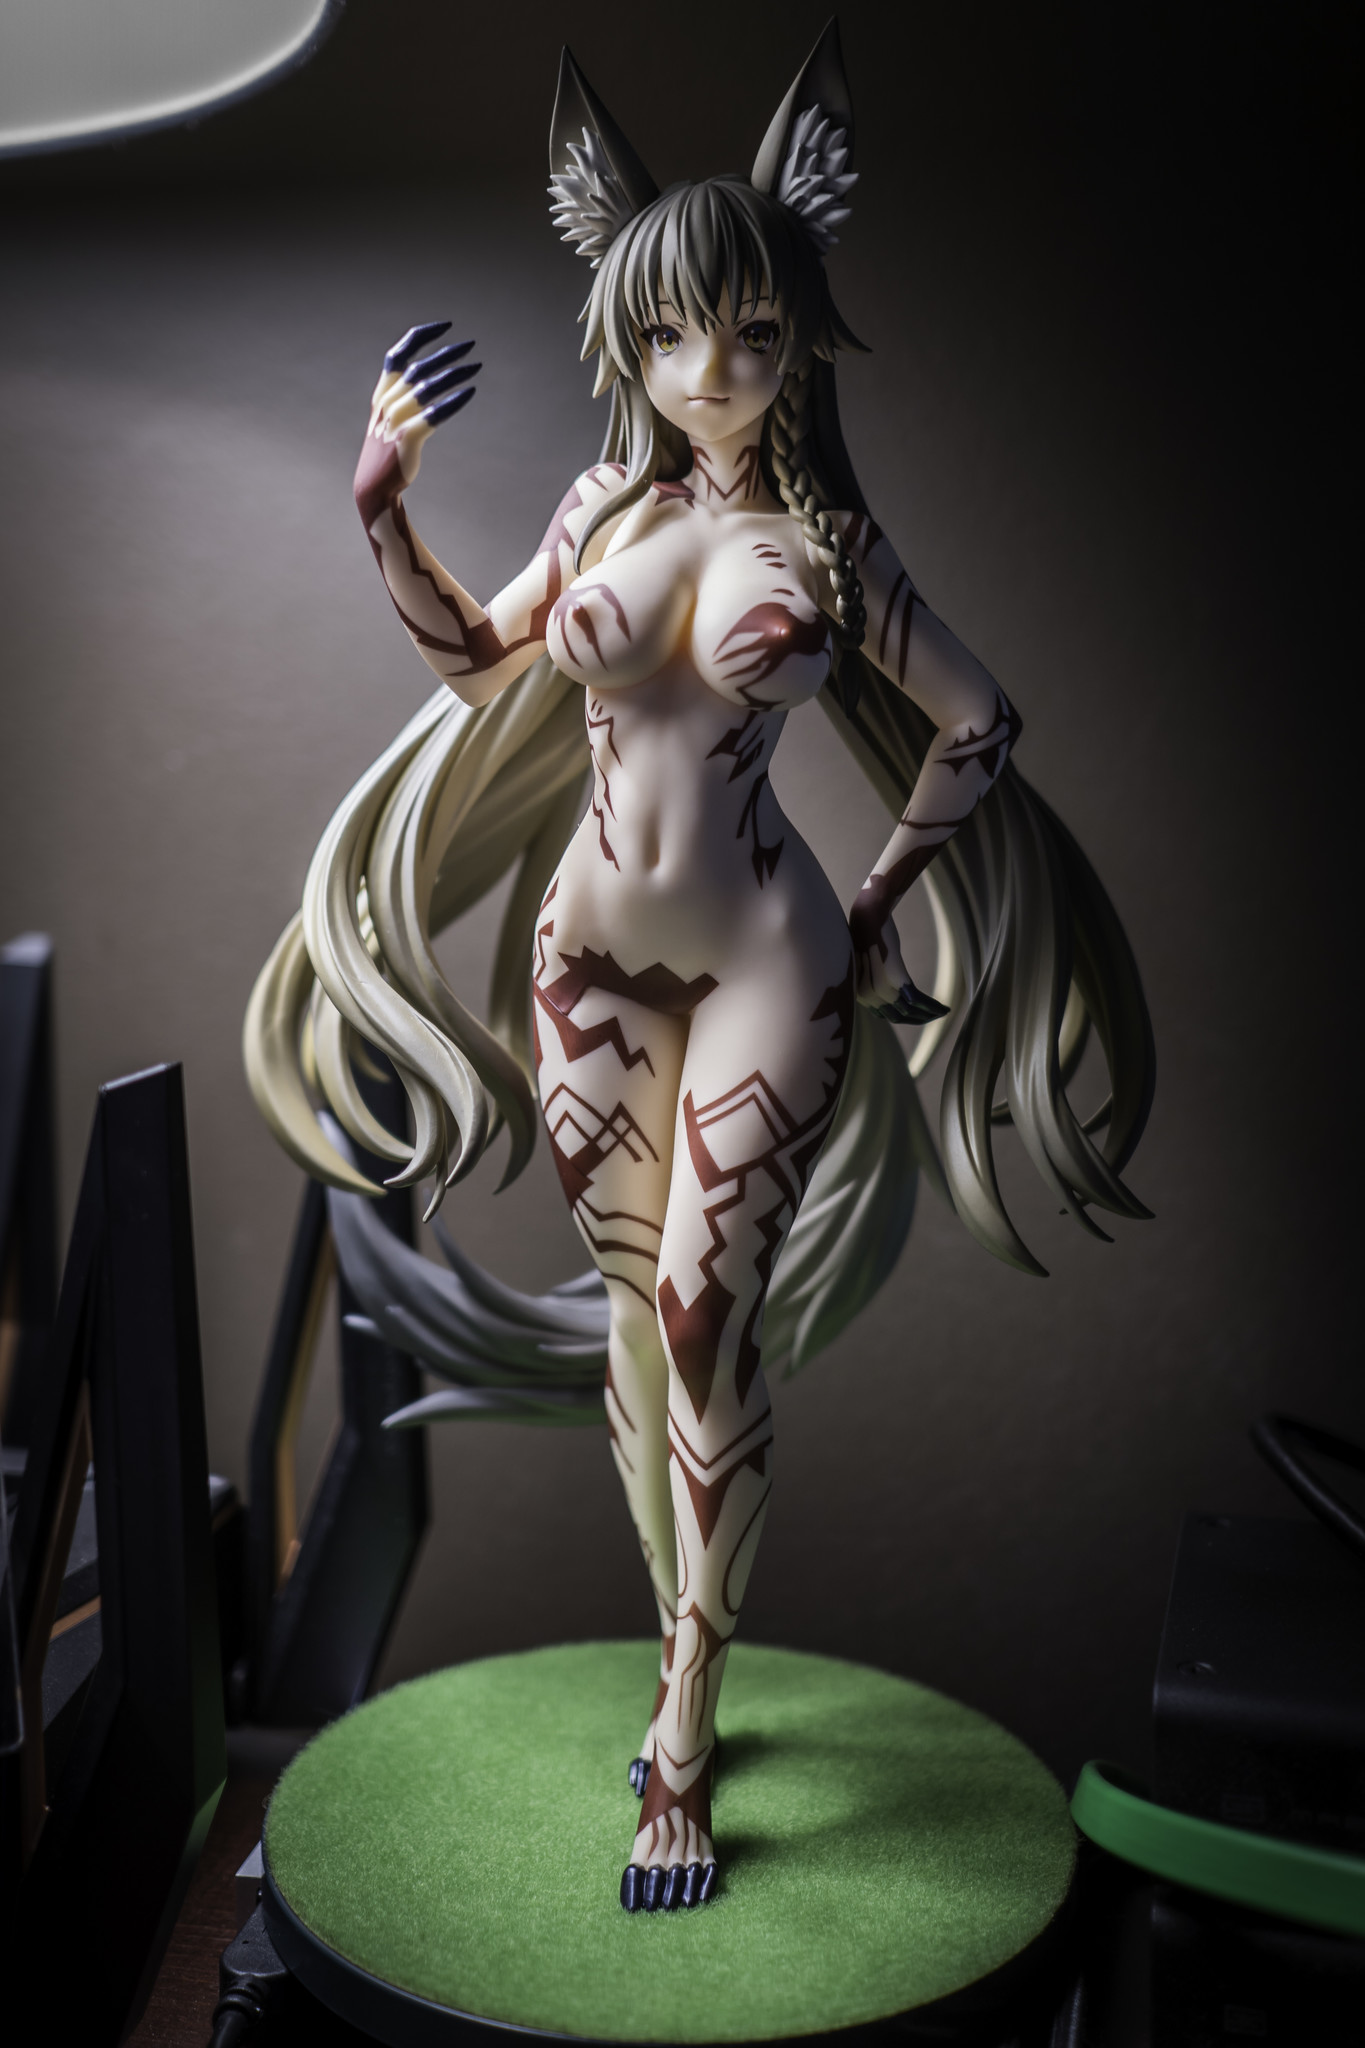 https://static.myfigurecollection.net/upload/pictures/2021/09/03/2840167.jpeg